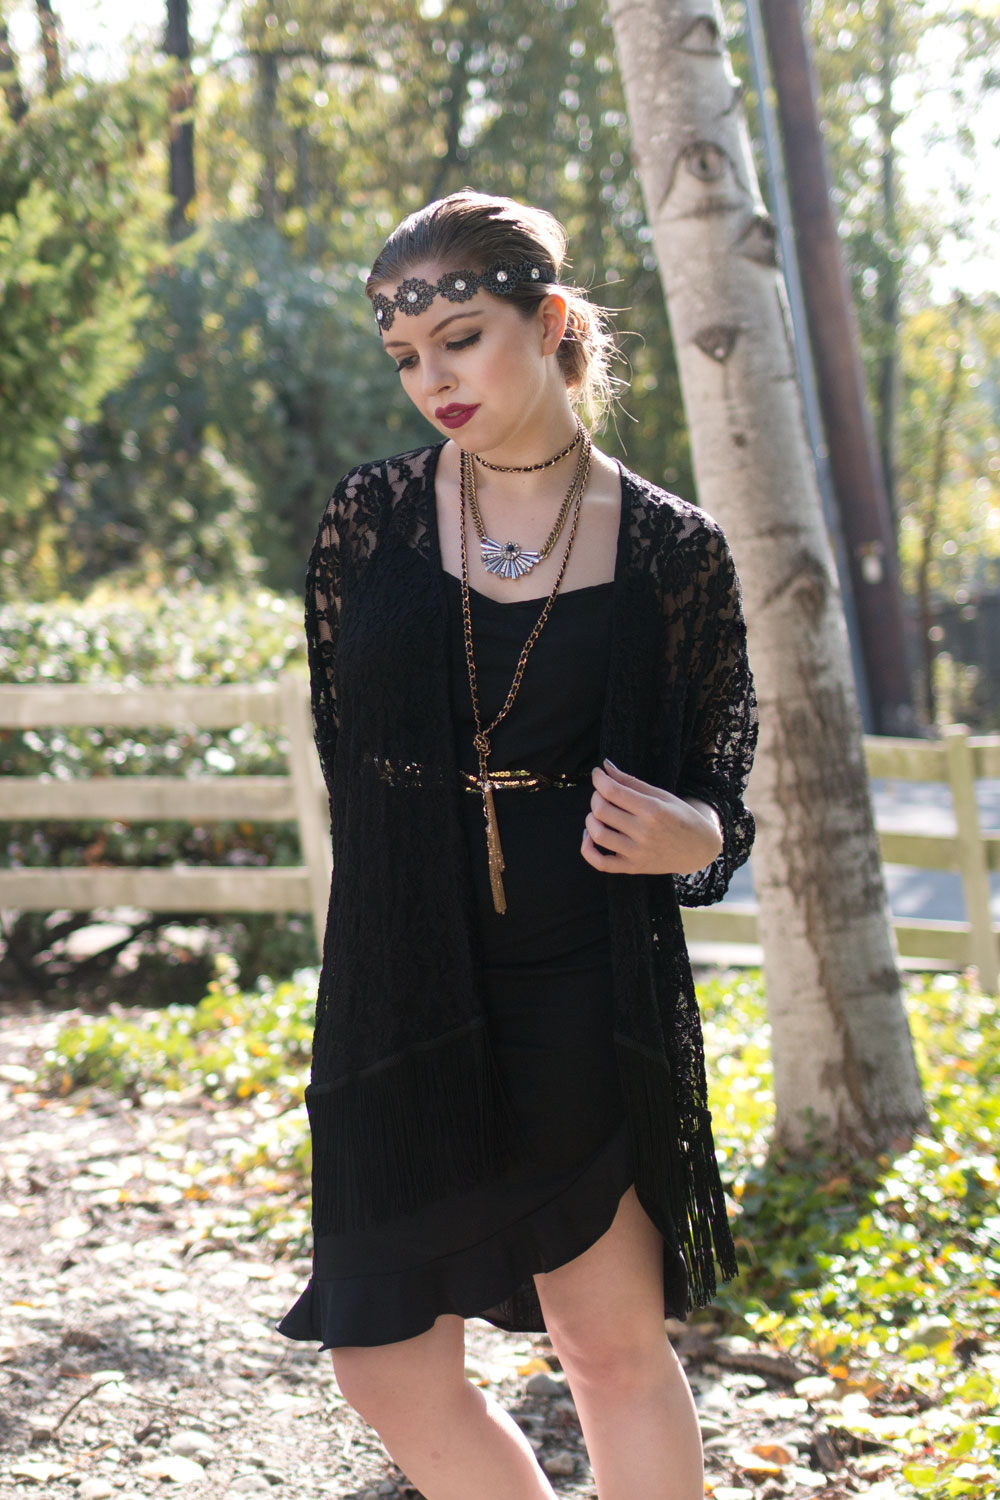 1920s Flapper/Gibson Girl Halloween Costume {On a Budget!} // hellorigby seattle fashion blog